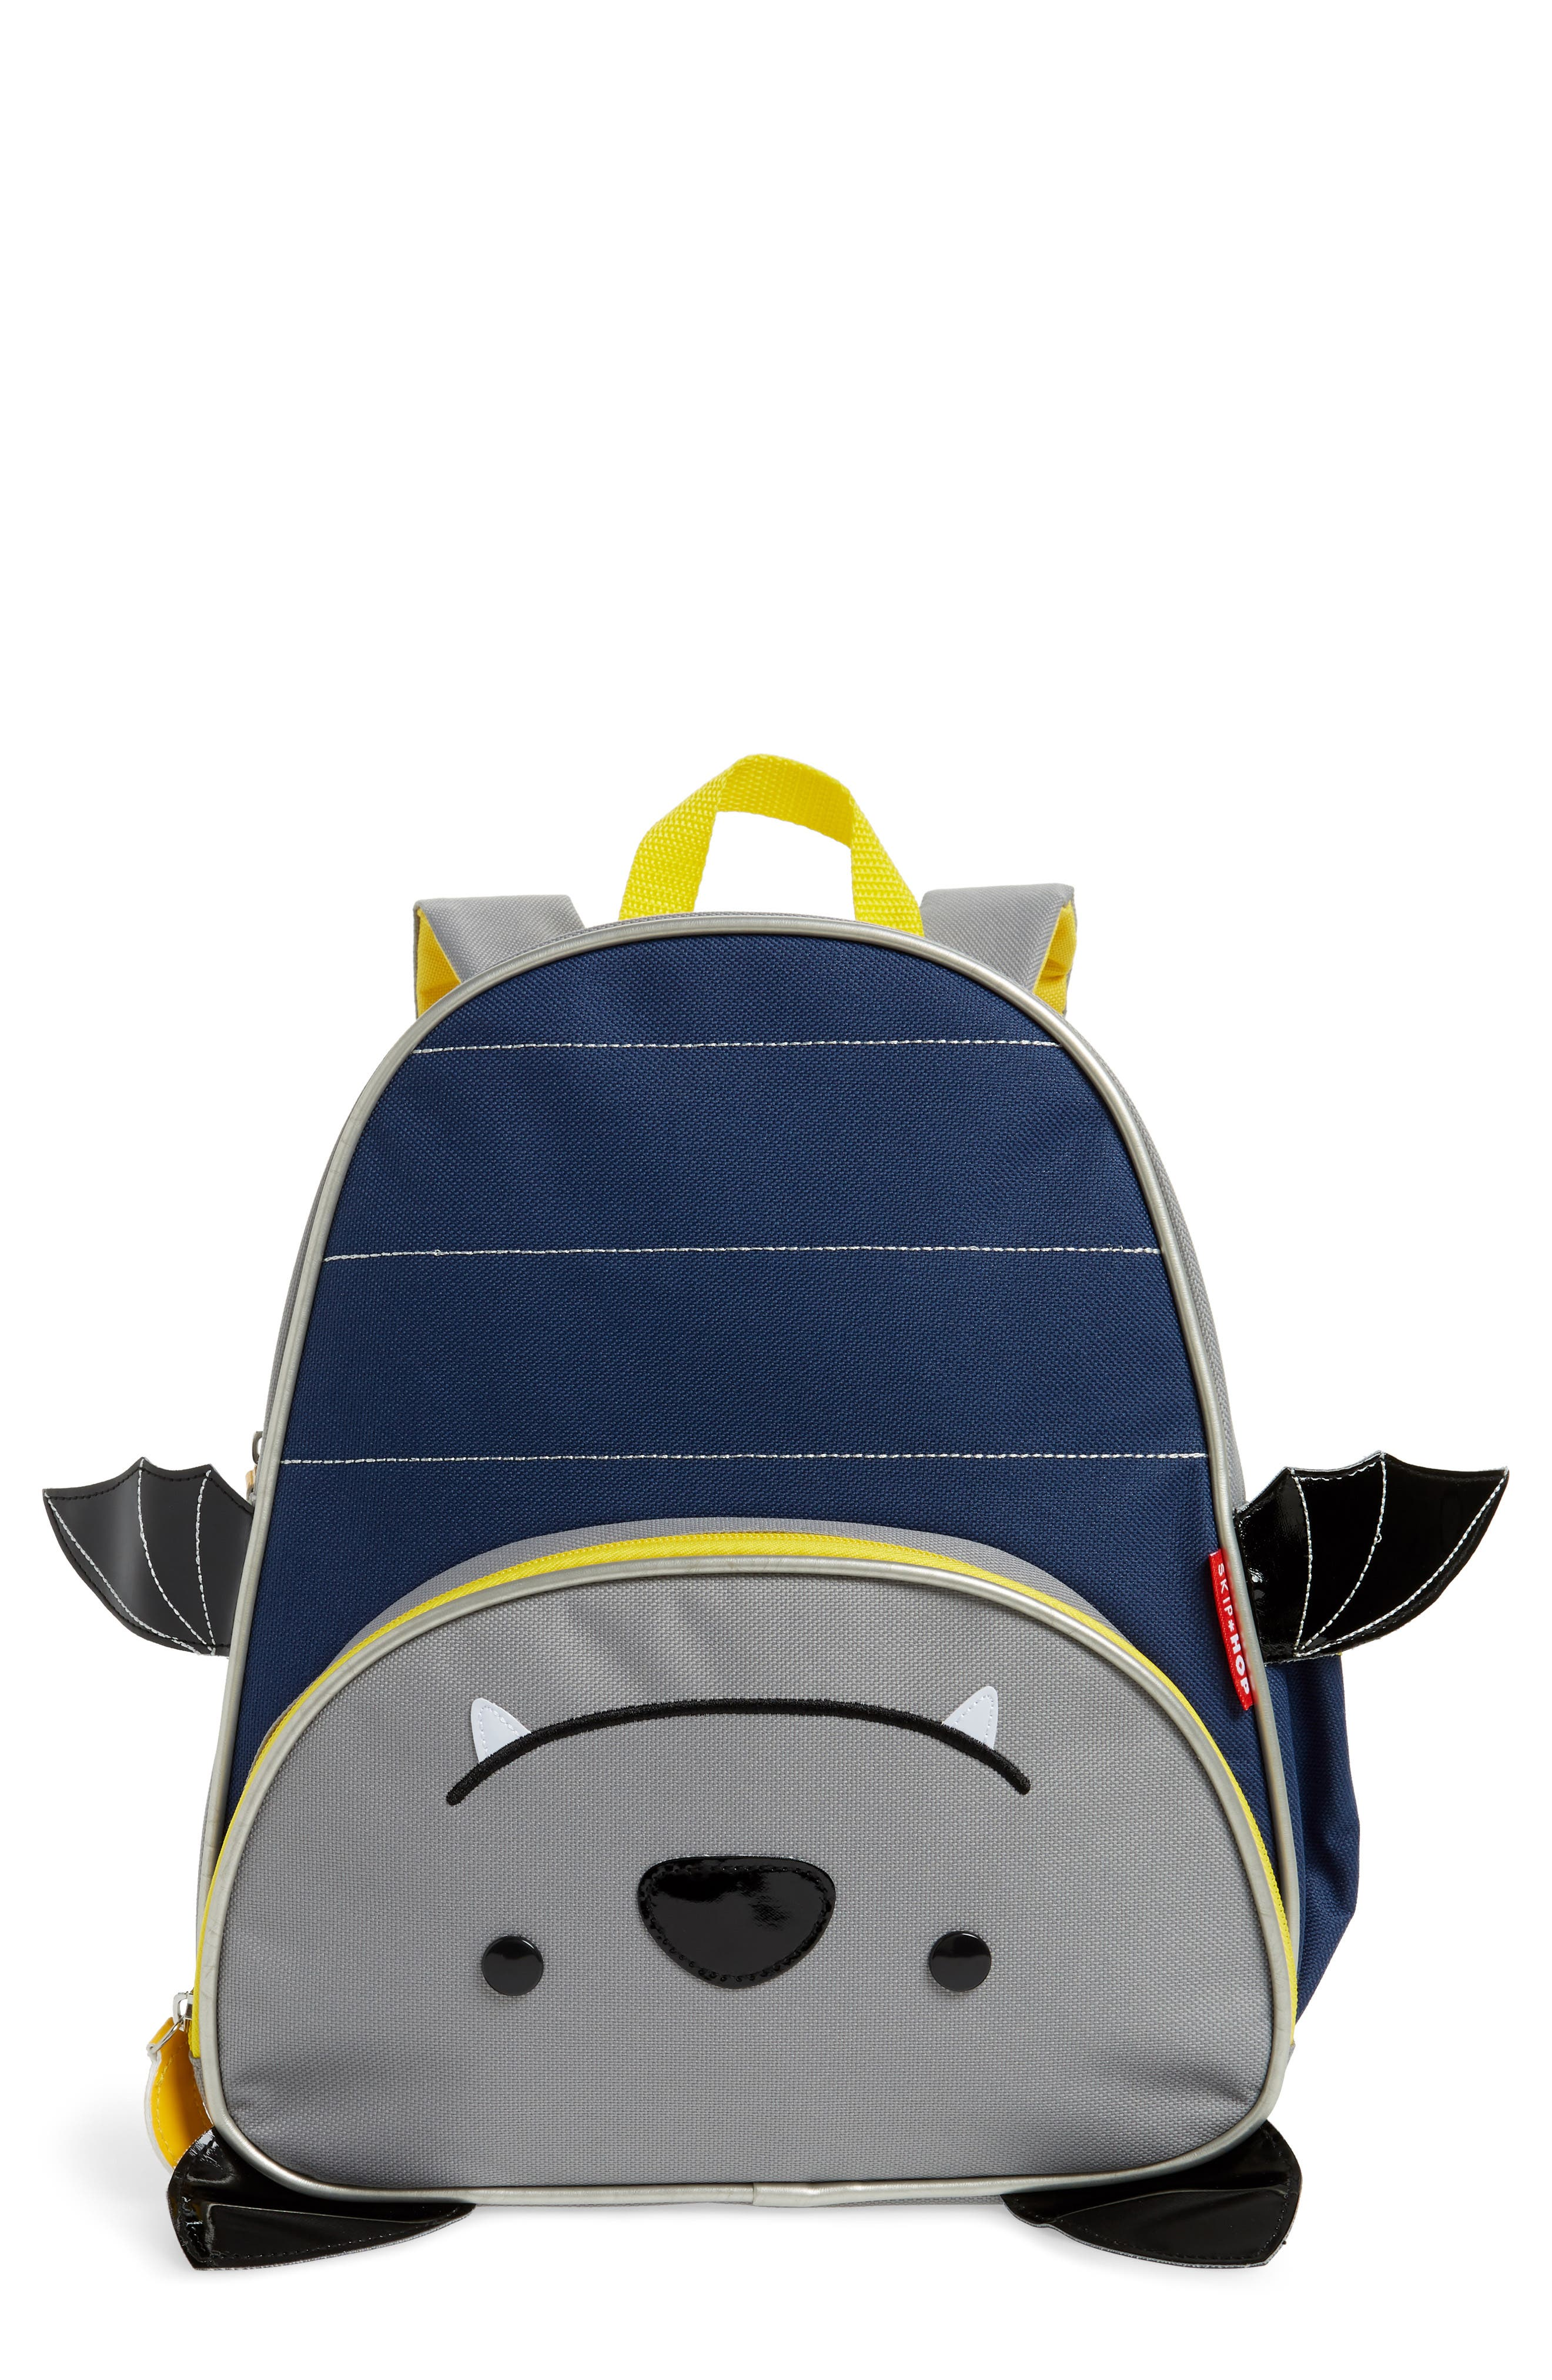 Zoo Pack Backpack,                         Main,                         color, NAVY BLUE